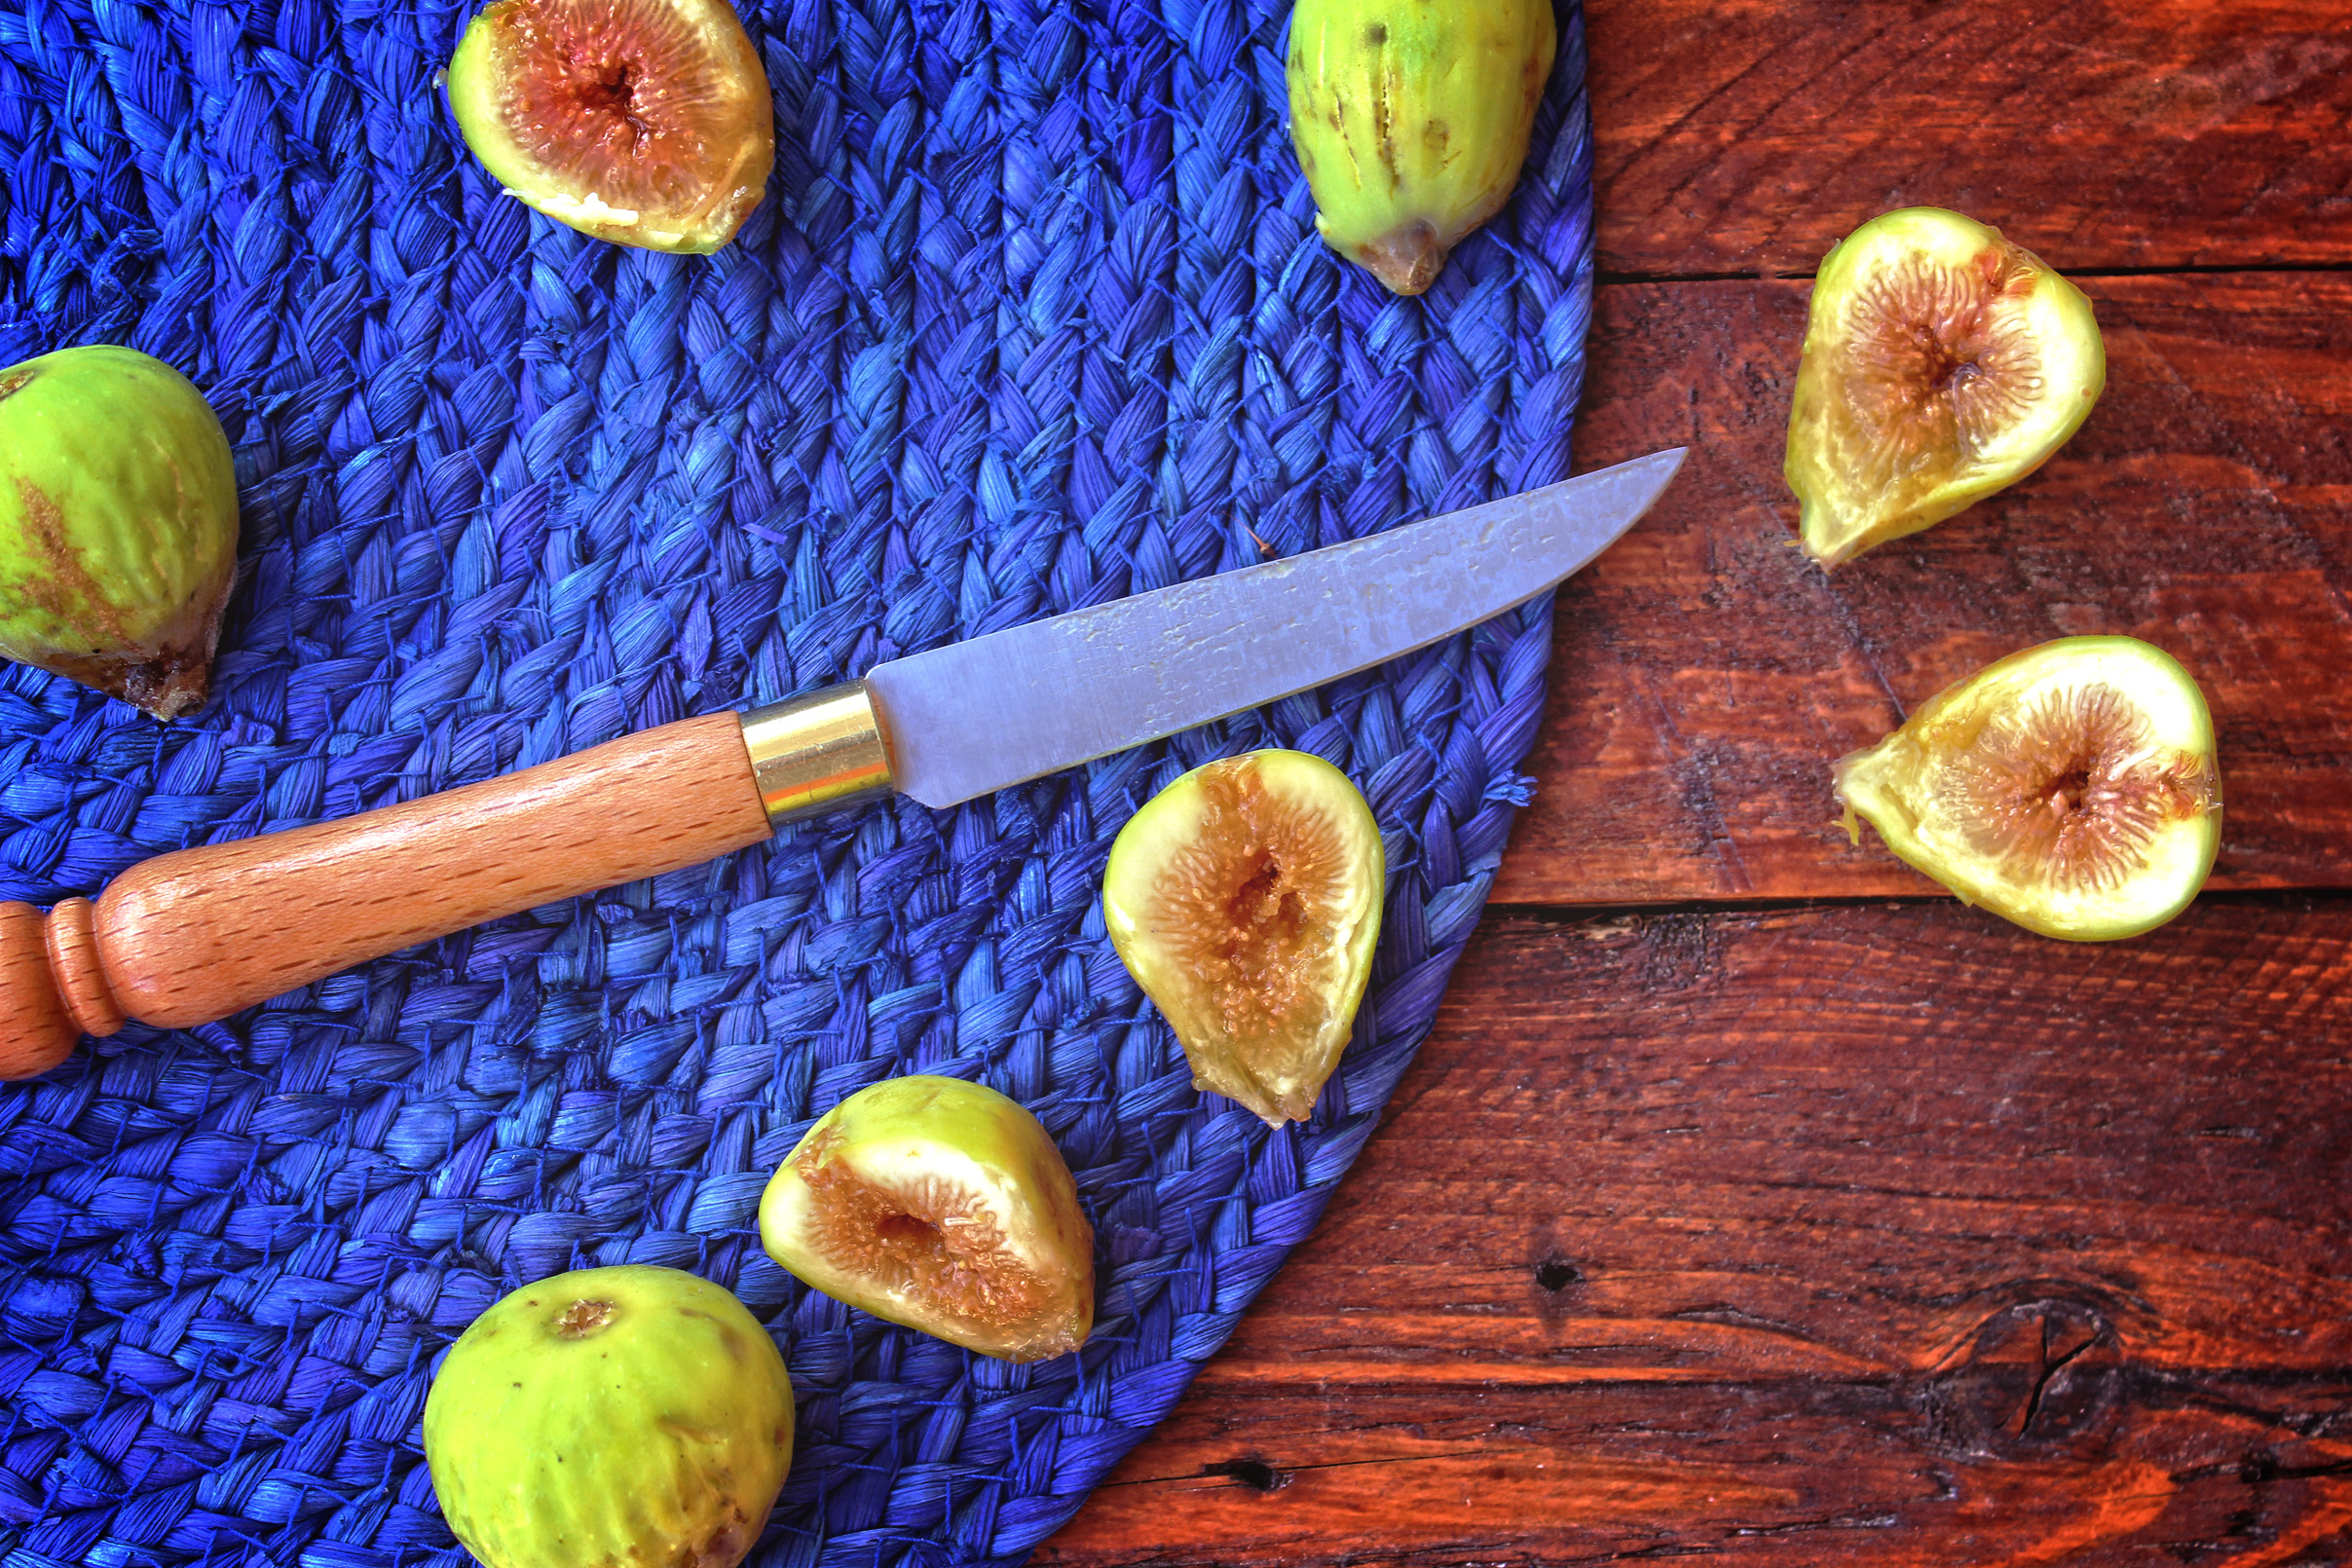 Summer s end - the last wild figs of the season sliced on the table photo